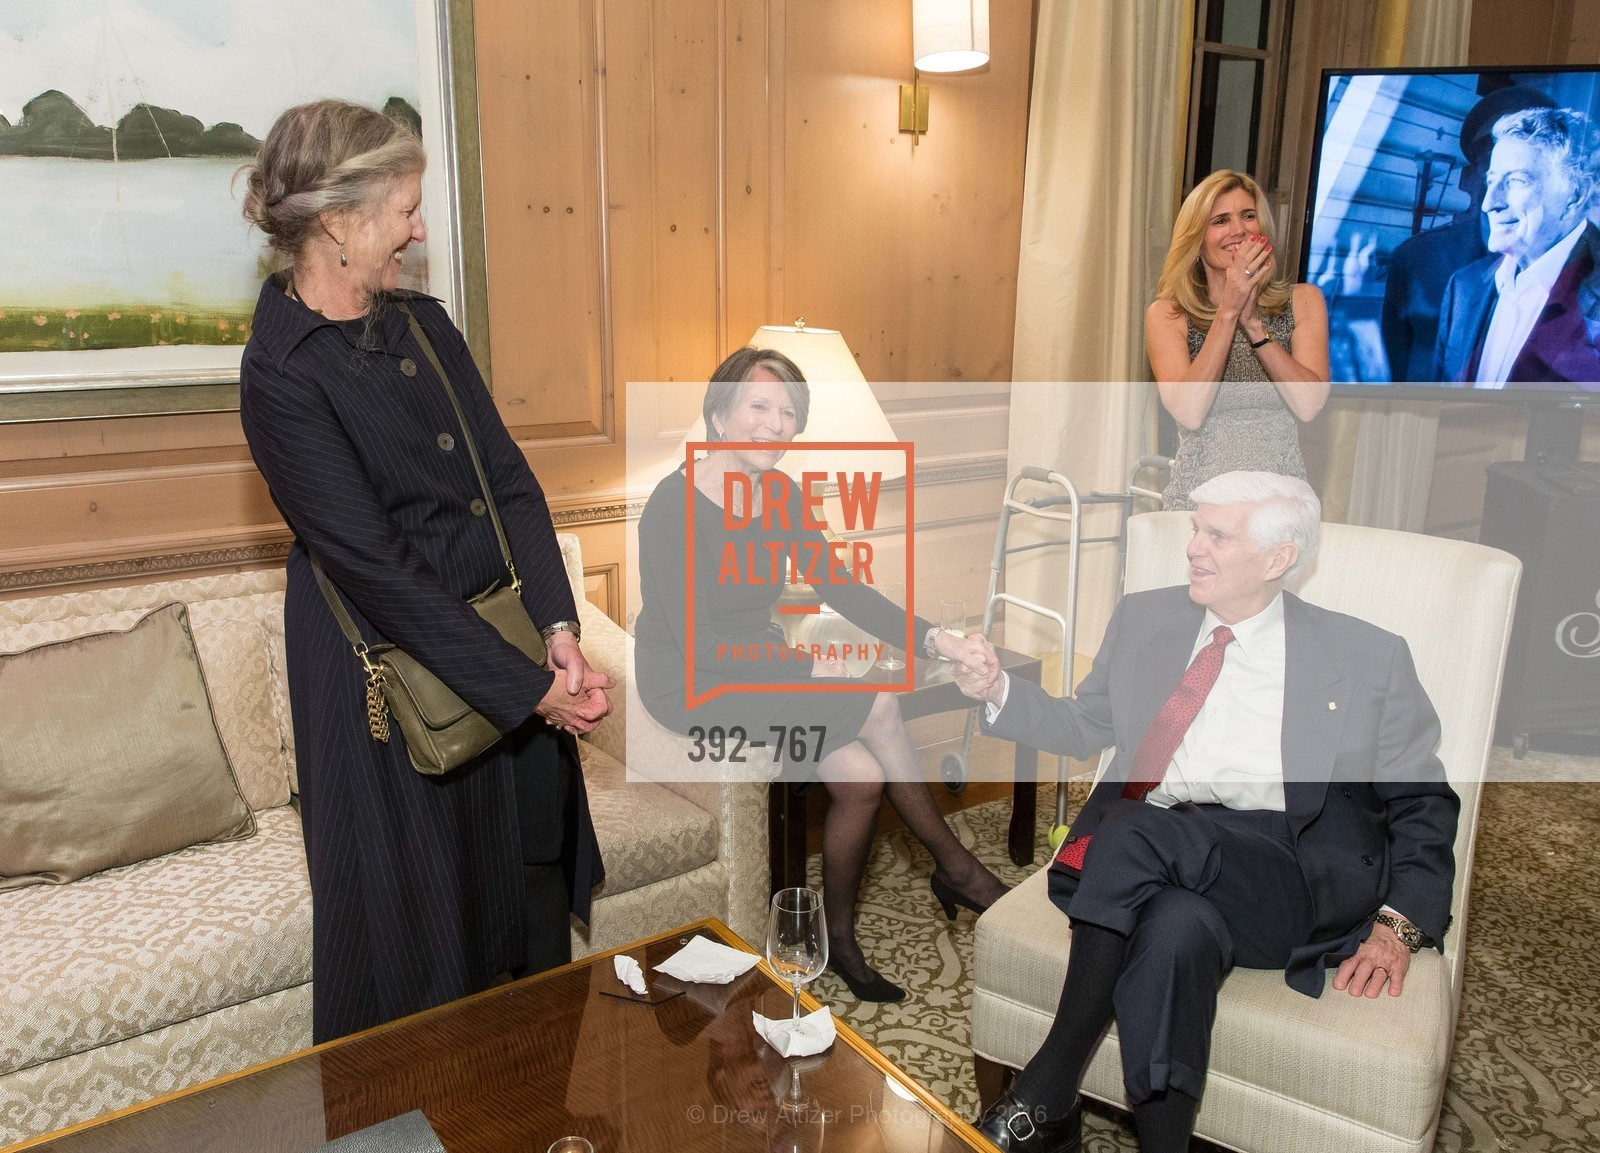 Mary Ann Crow, Dayl Crow, Susan Benedetto, A Special Reception with Tony Bennett, The Fairmont, San Francisco, The Penthouse Suite, January 26th, 2016,Drew Altizer, Drew Altizer Photography, full-service agency, private events, San Francisco photographer, photographer california